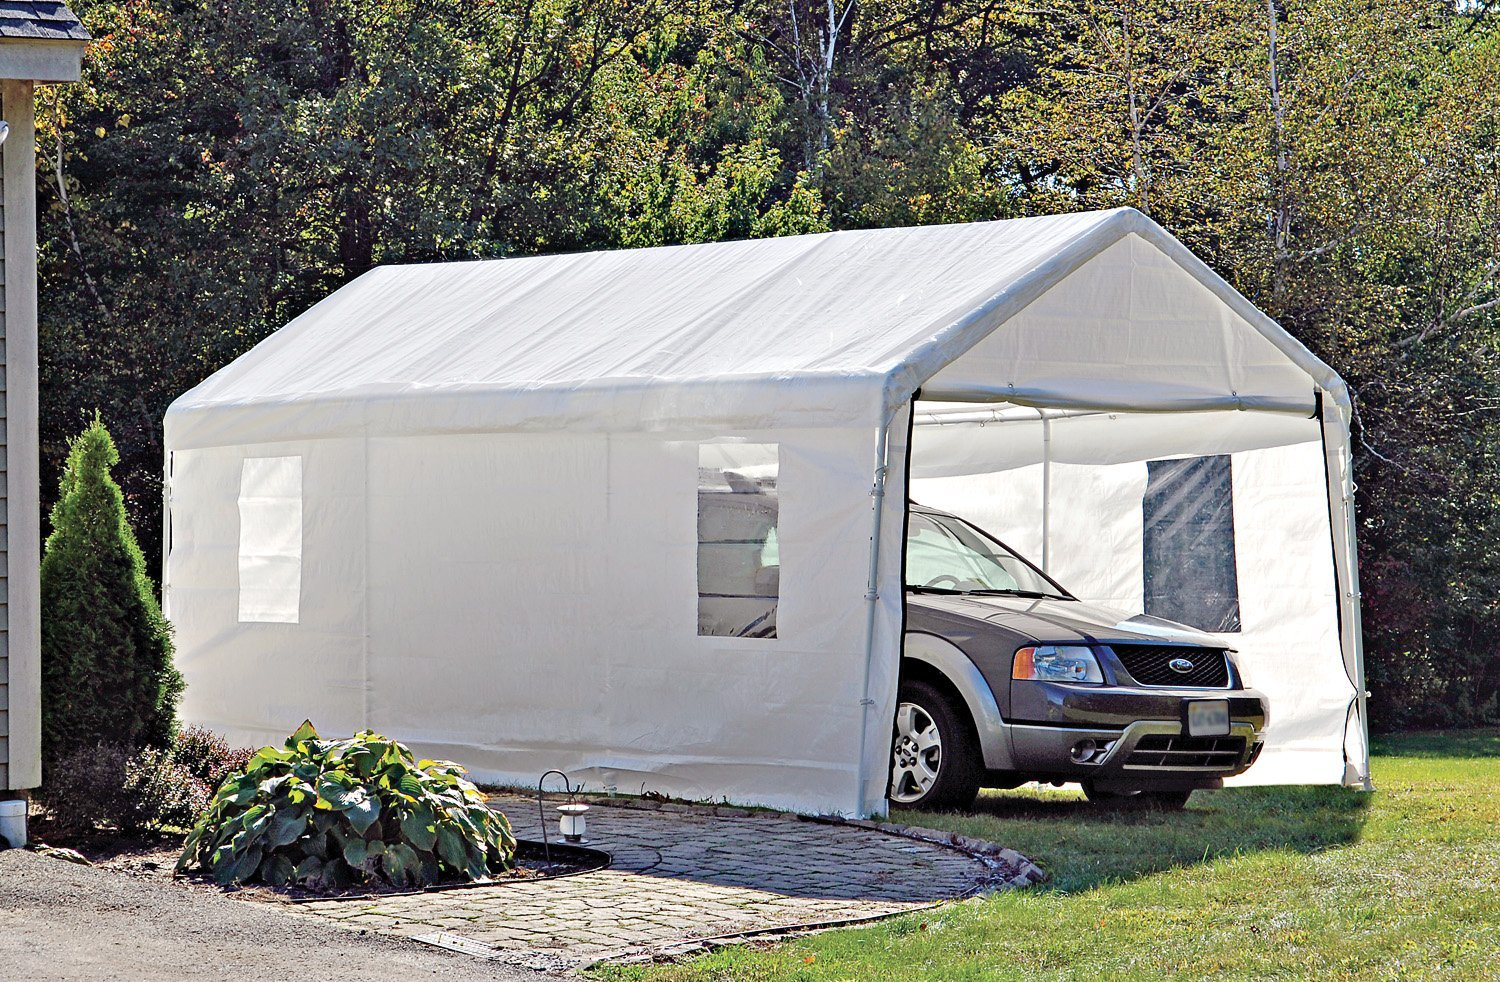 Top 10 Best Car Shelters & Canopy Reviews 2020 – Buyers' Guide